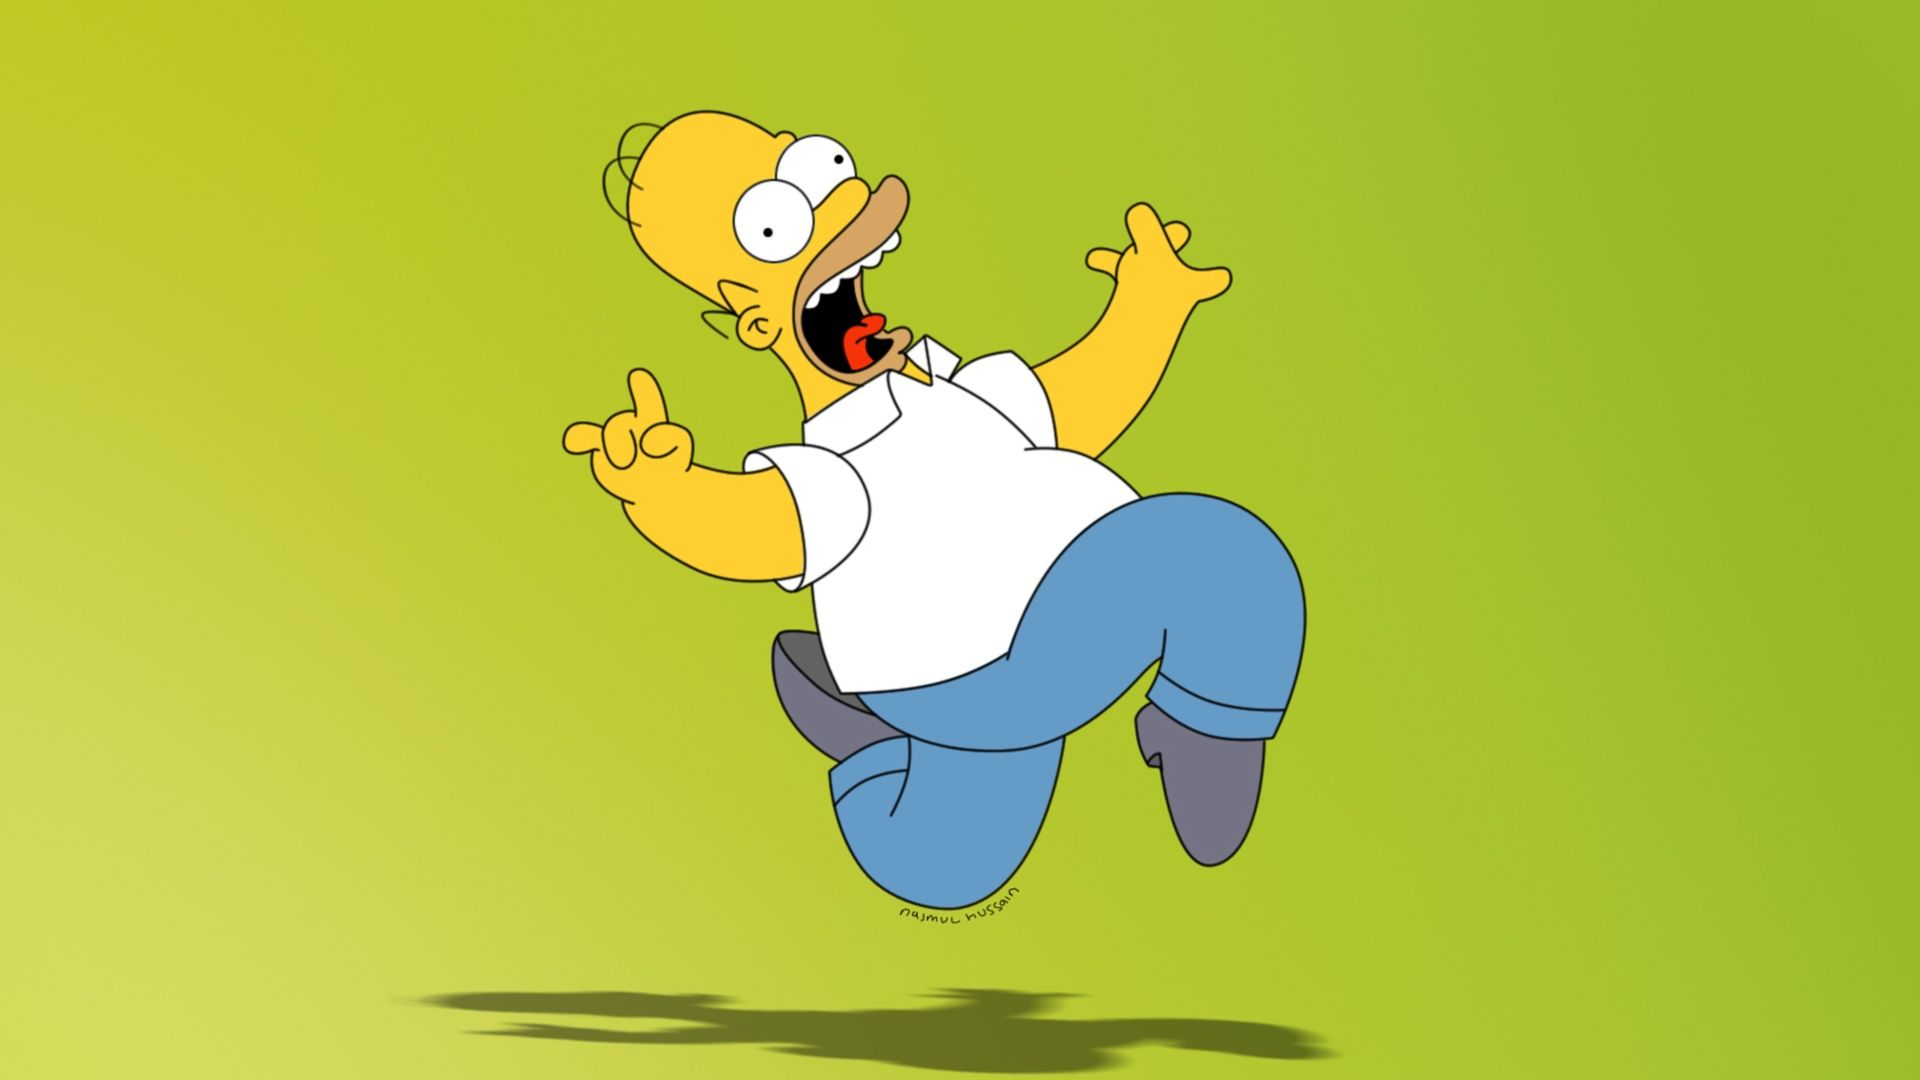 Homer Simpson, The Simpsons, Lime Green Desktop Wallpaper